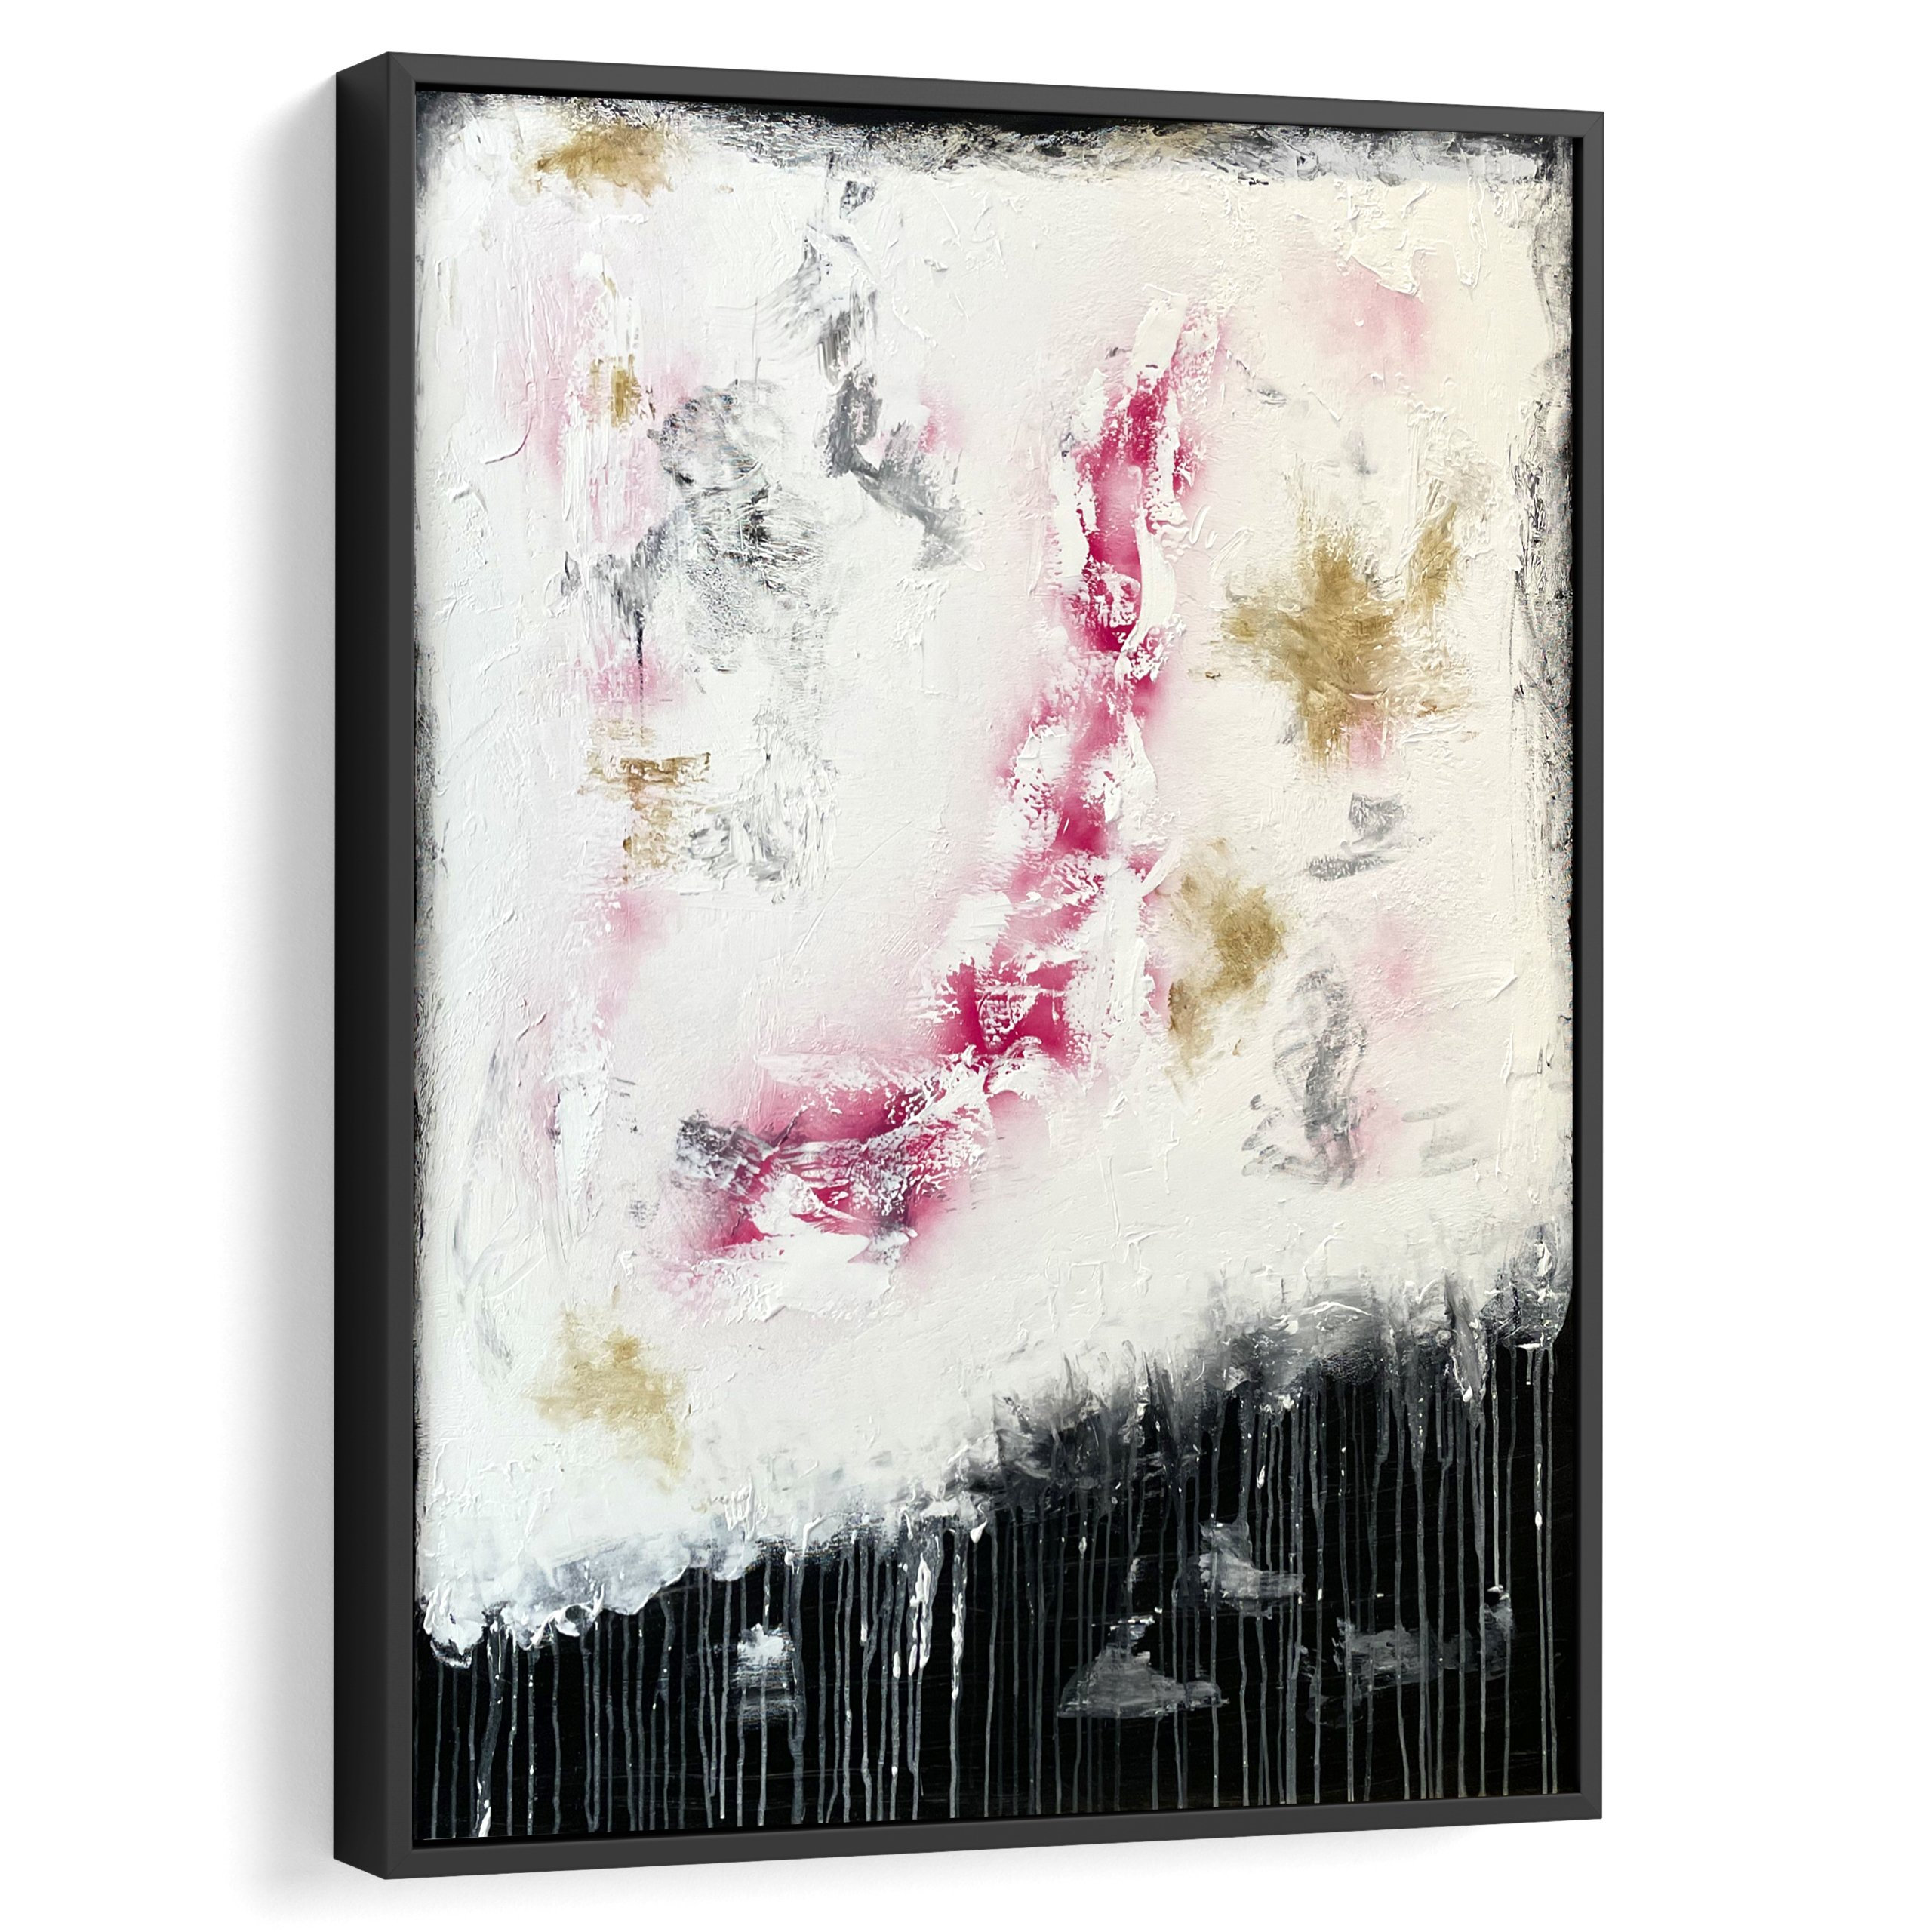 Black and white abstract art by benny moshe